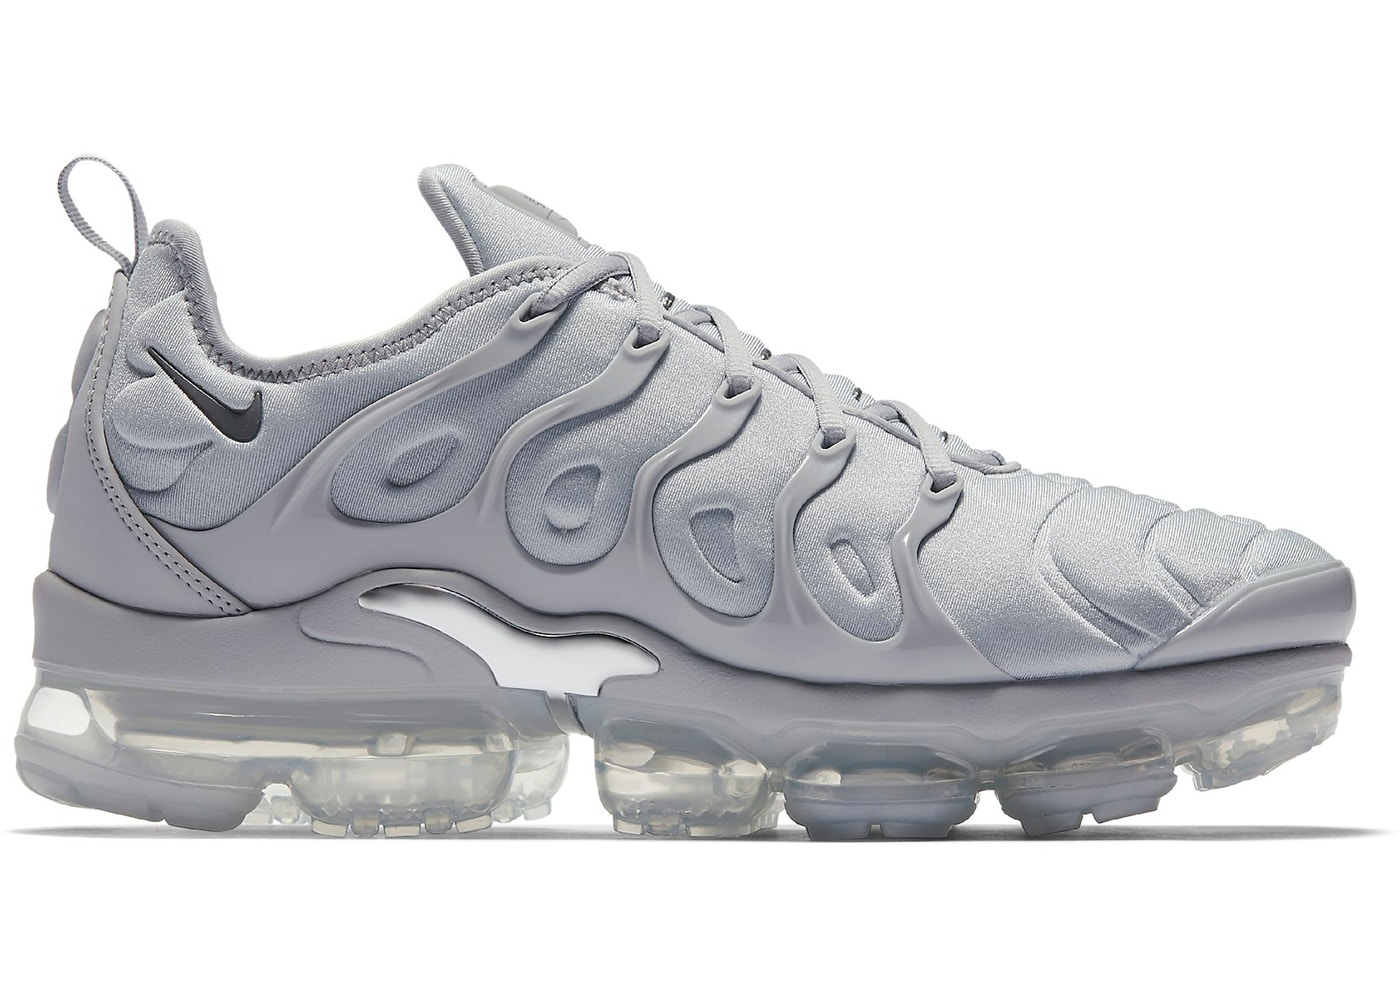 5611e1e7869 Air VaporMax Plus Cool Grey - 924453-005